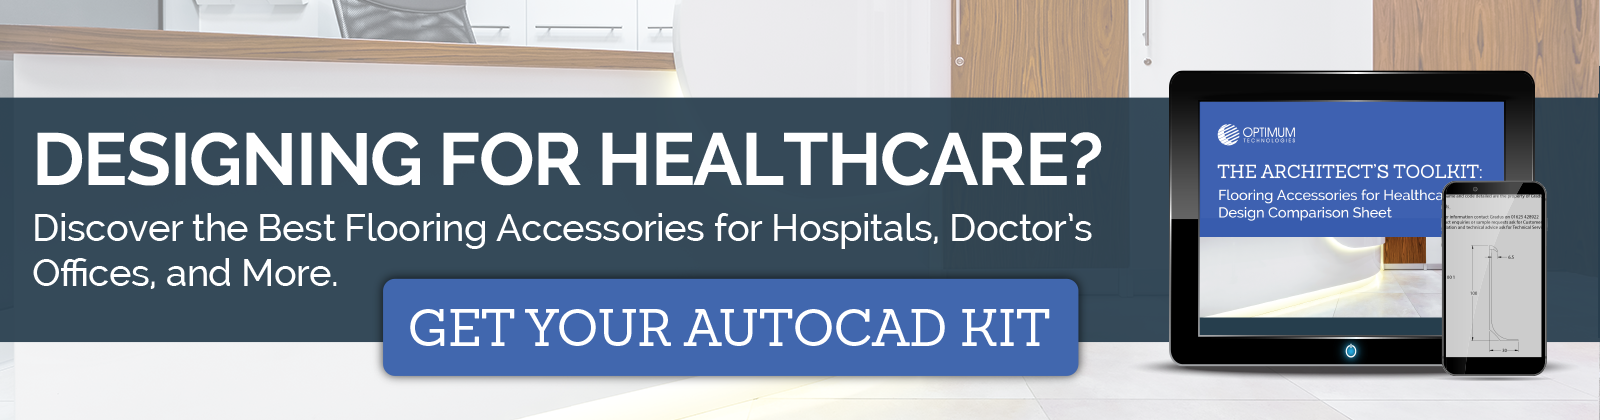 Healthcare Flooring Accessories AutoCAD Kit